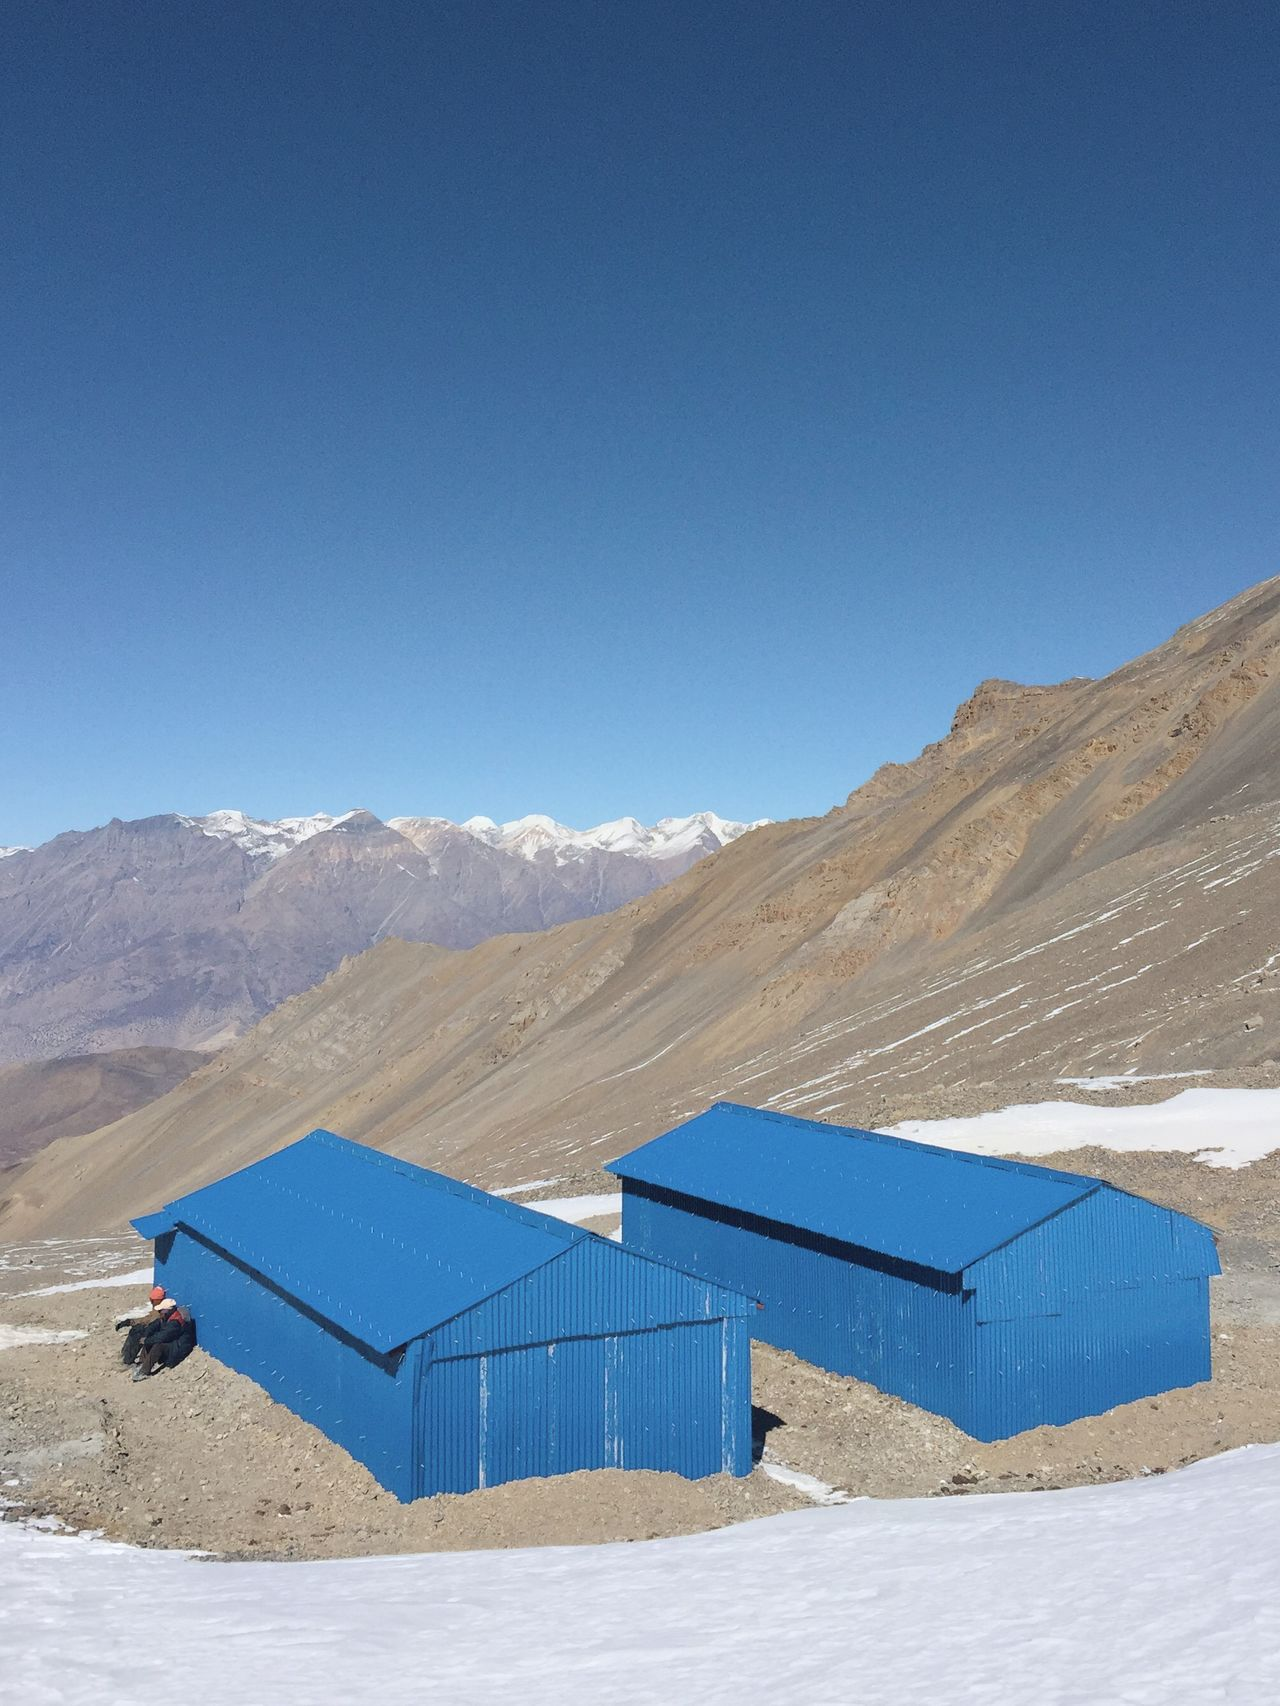 Adventures Annapurnacircuit Desert Deserted Geometric Shapes Himalayas IPhone Landscape_Collection Mountain_collection Natural Geometry Nepal Outdoor Photography Upper Mustang Blue Wave